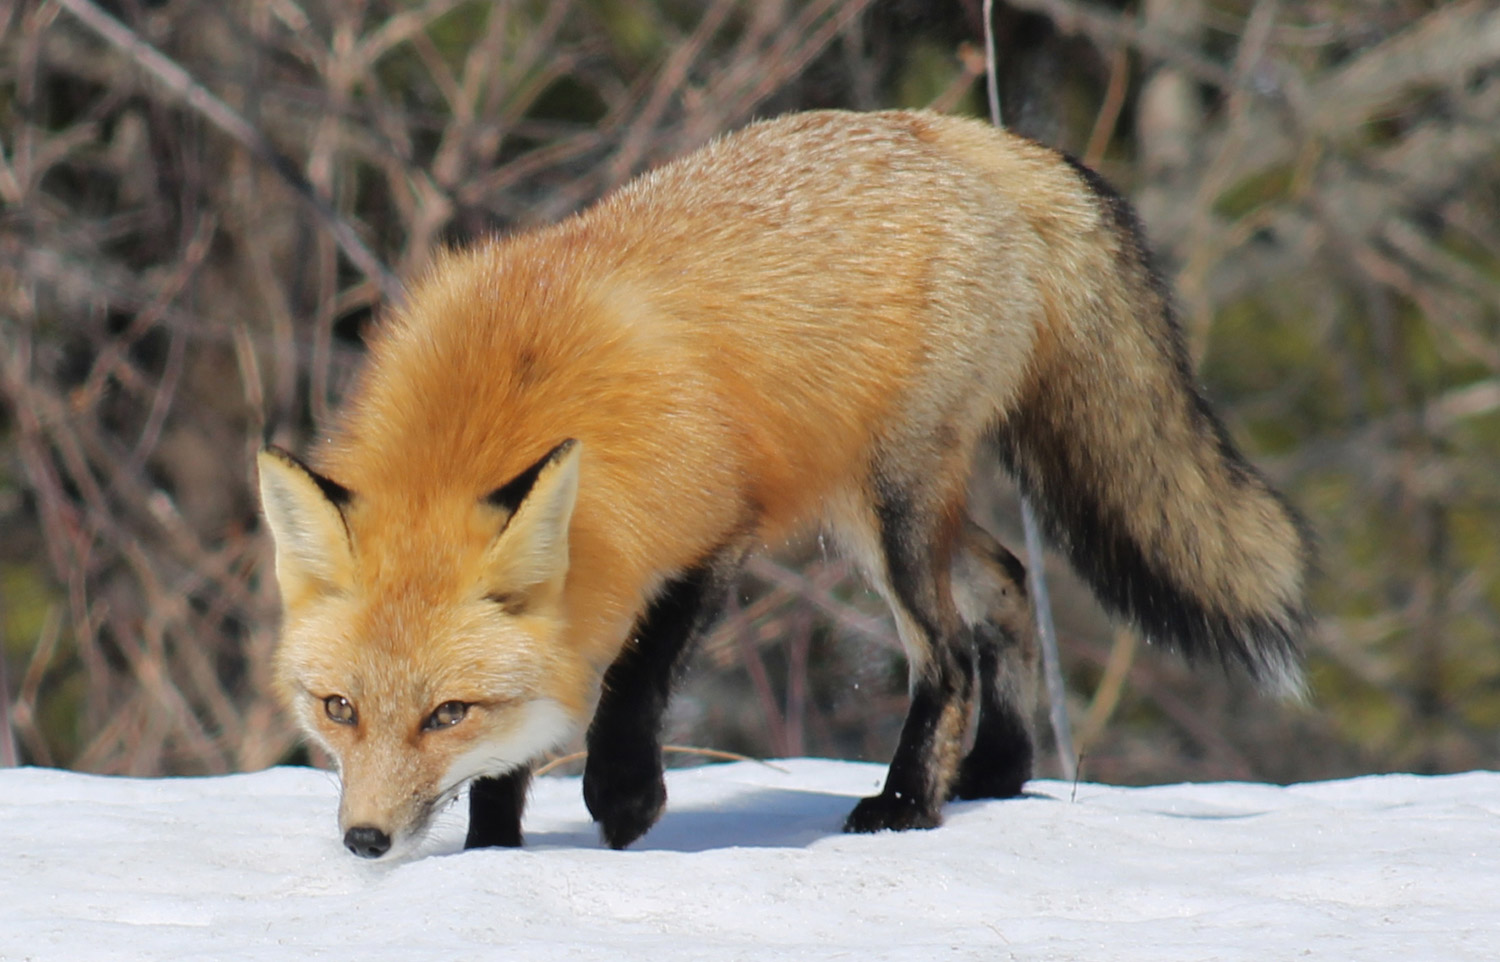 Tammy Davis of Appleton had a recent morning brightened by the appearance of a red fox.